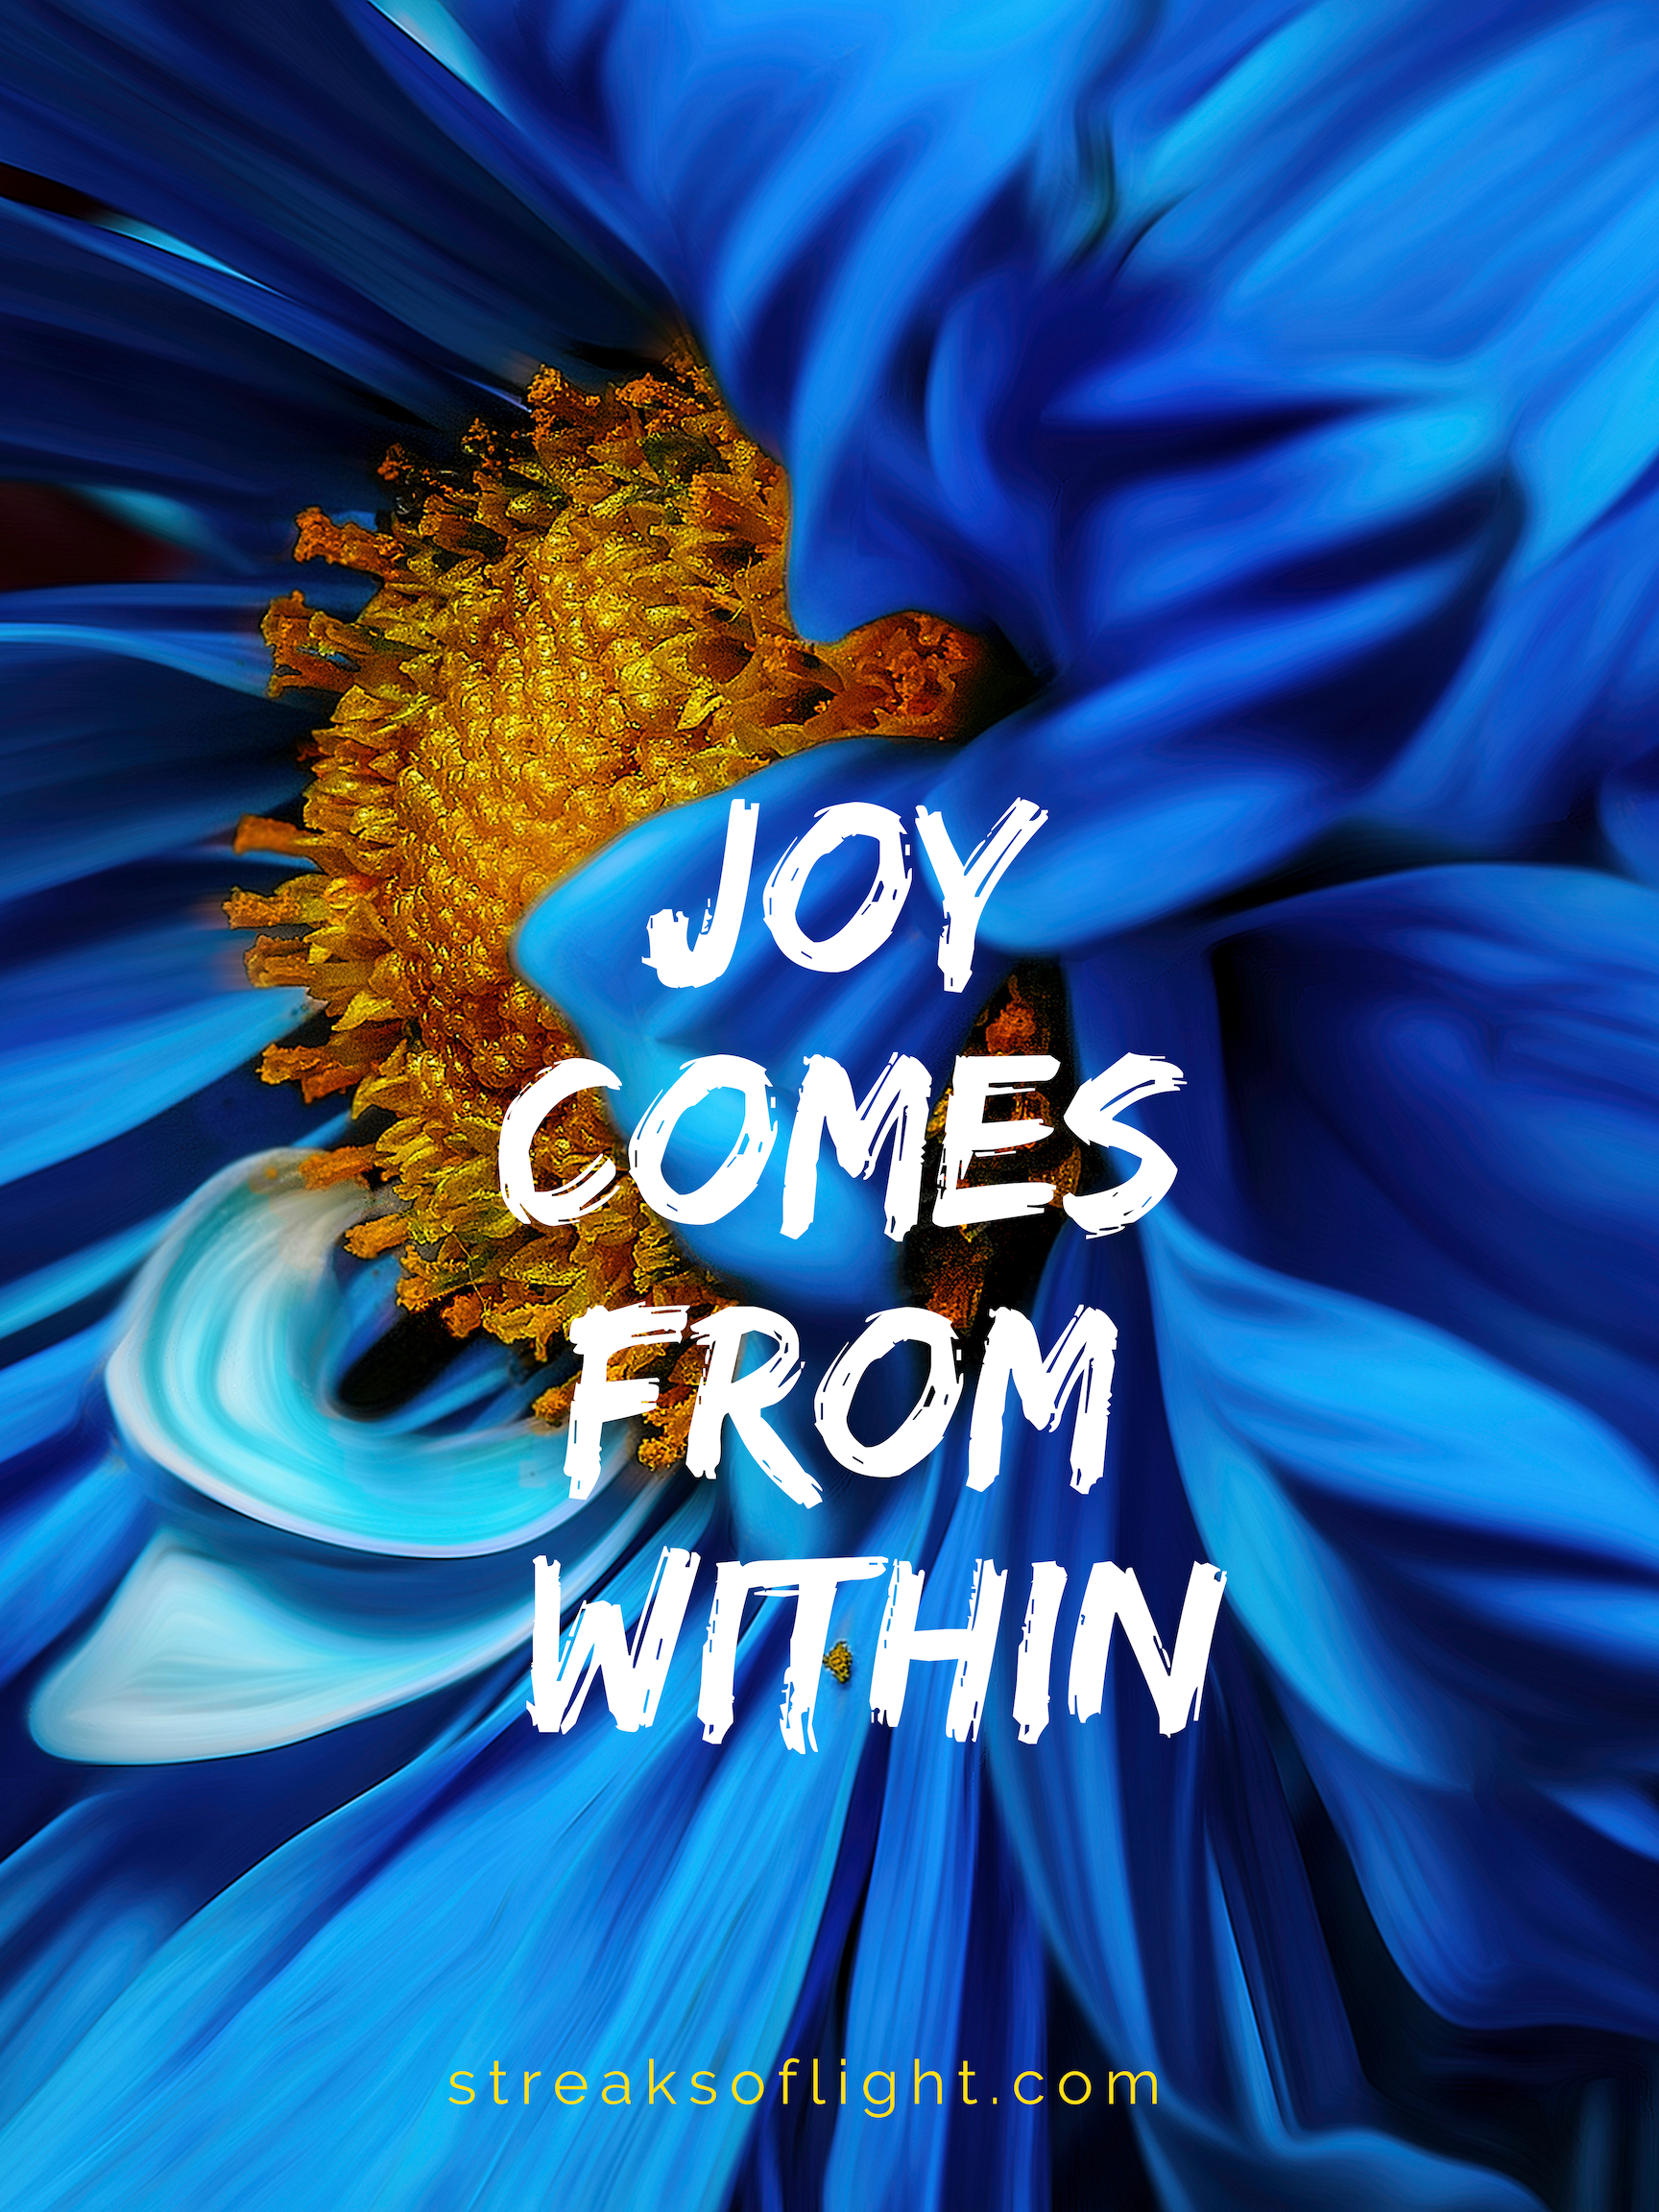 Joy comes from within. Counting your blessings will help you find joy despite the difficulties you may be facing.